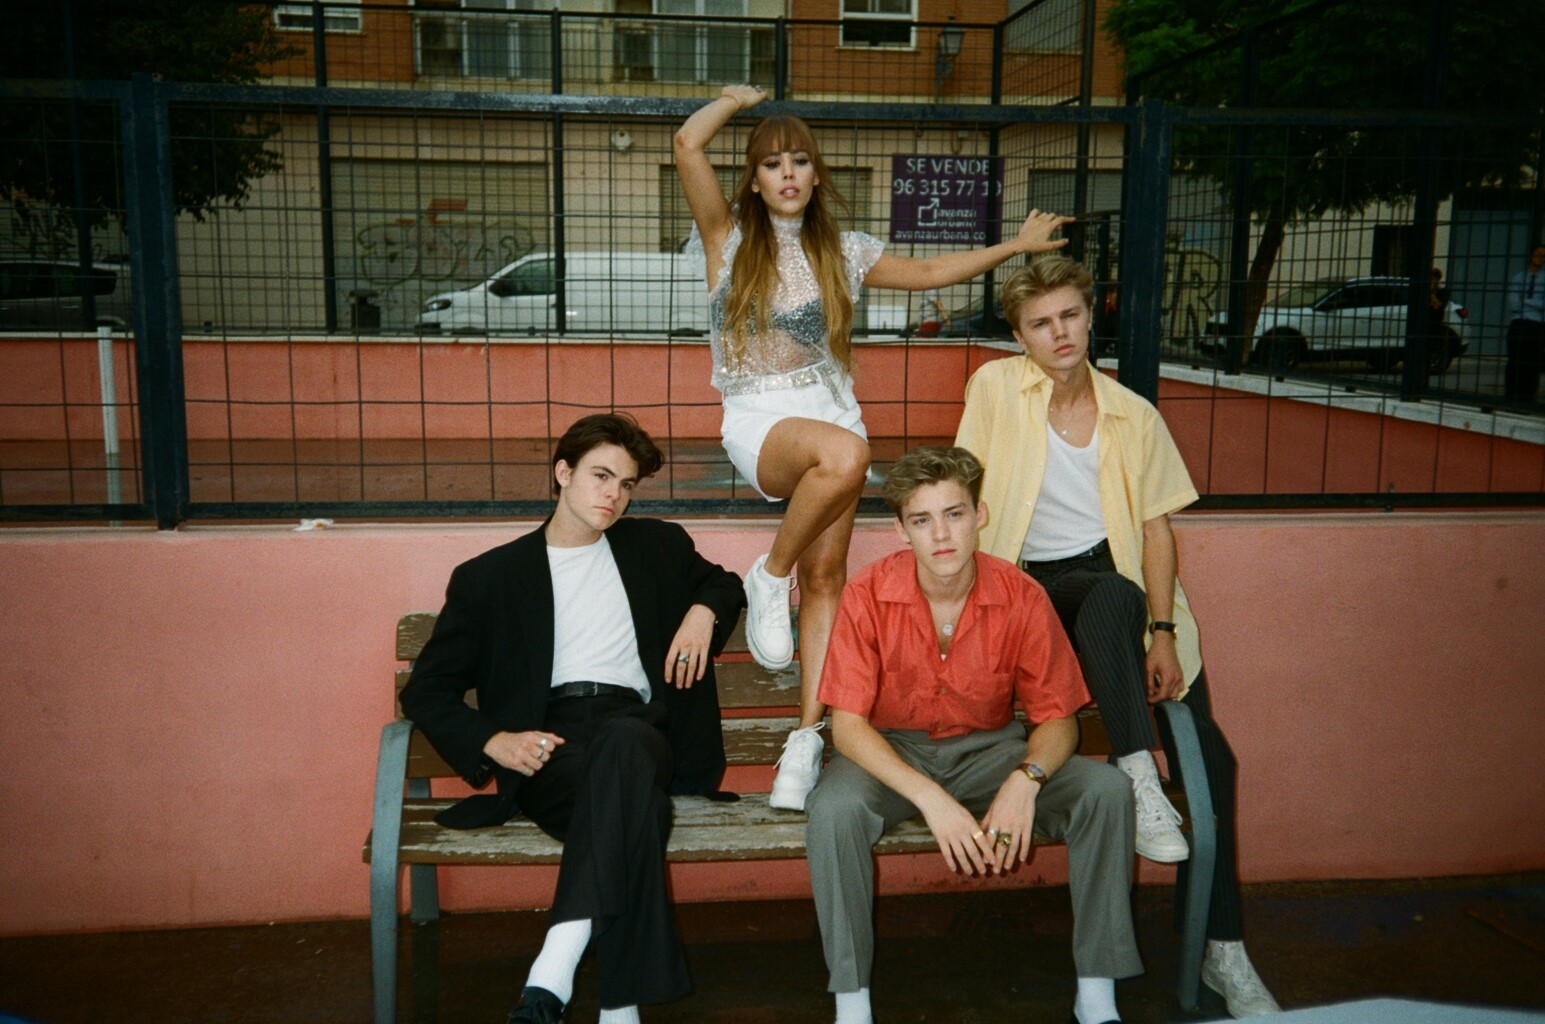 New Hope Club Reveal Music Video For Latest Single Know Me Too Well Featuring Mexican Star Danna Paola Essentially Pop